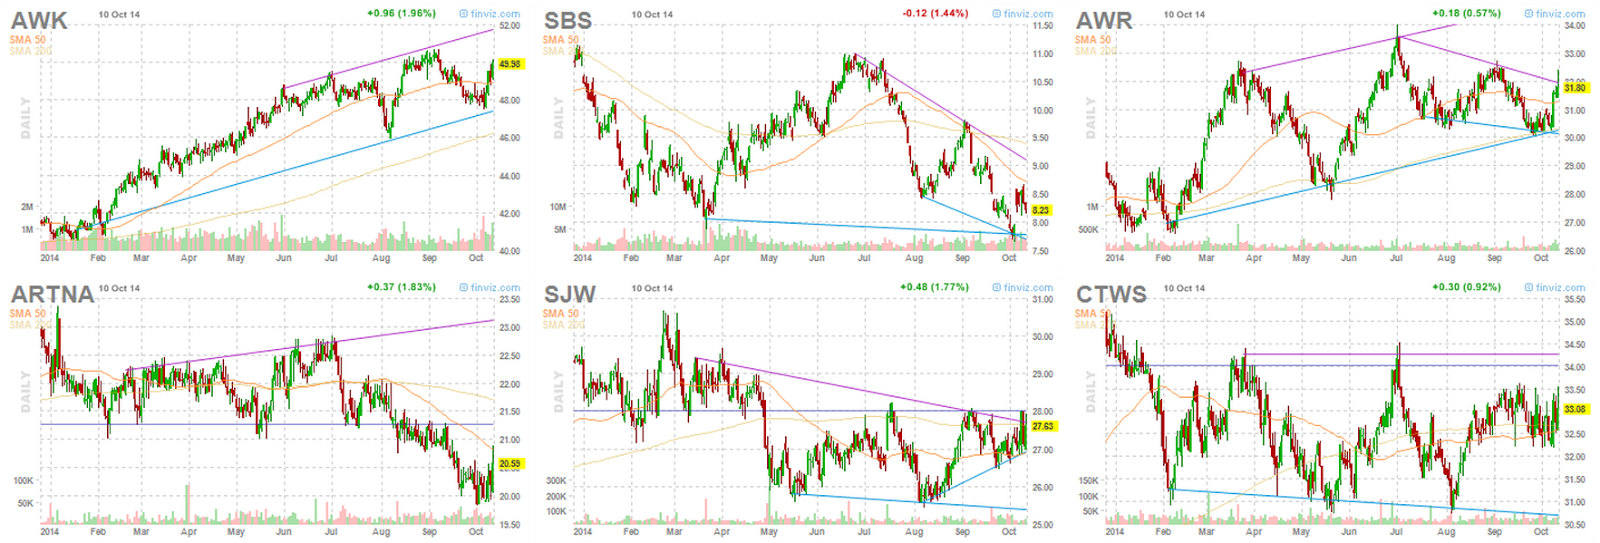 Water Utilities stocks